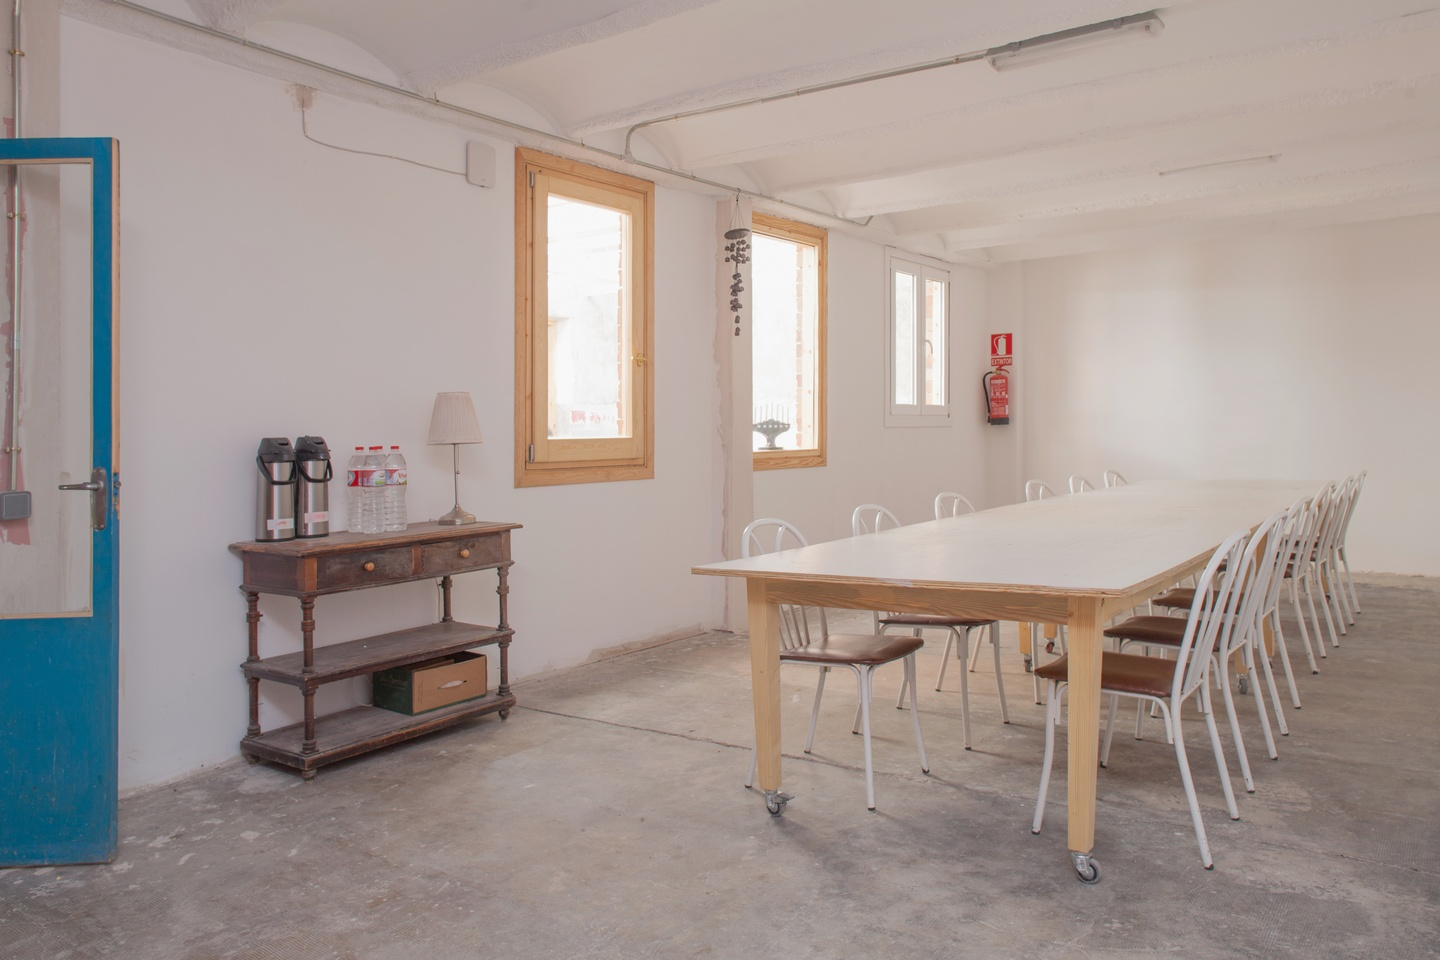 Barcelona workshop spaces Meeting room Betahaus - Classroom image 1